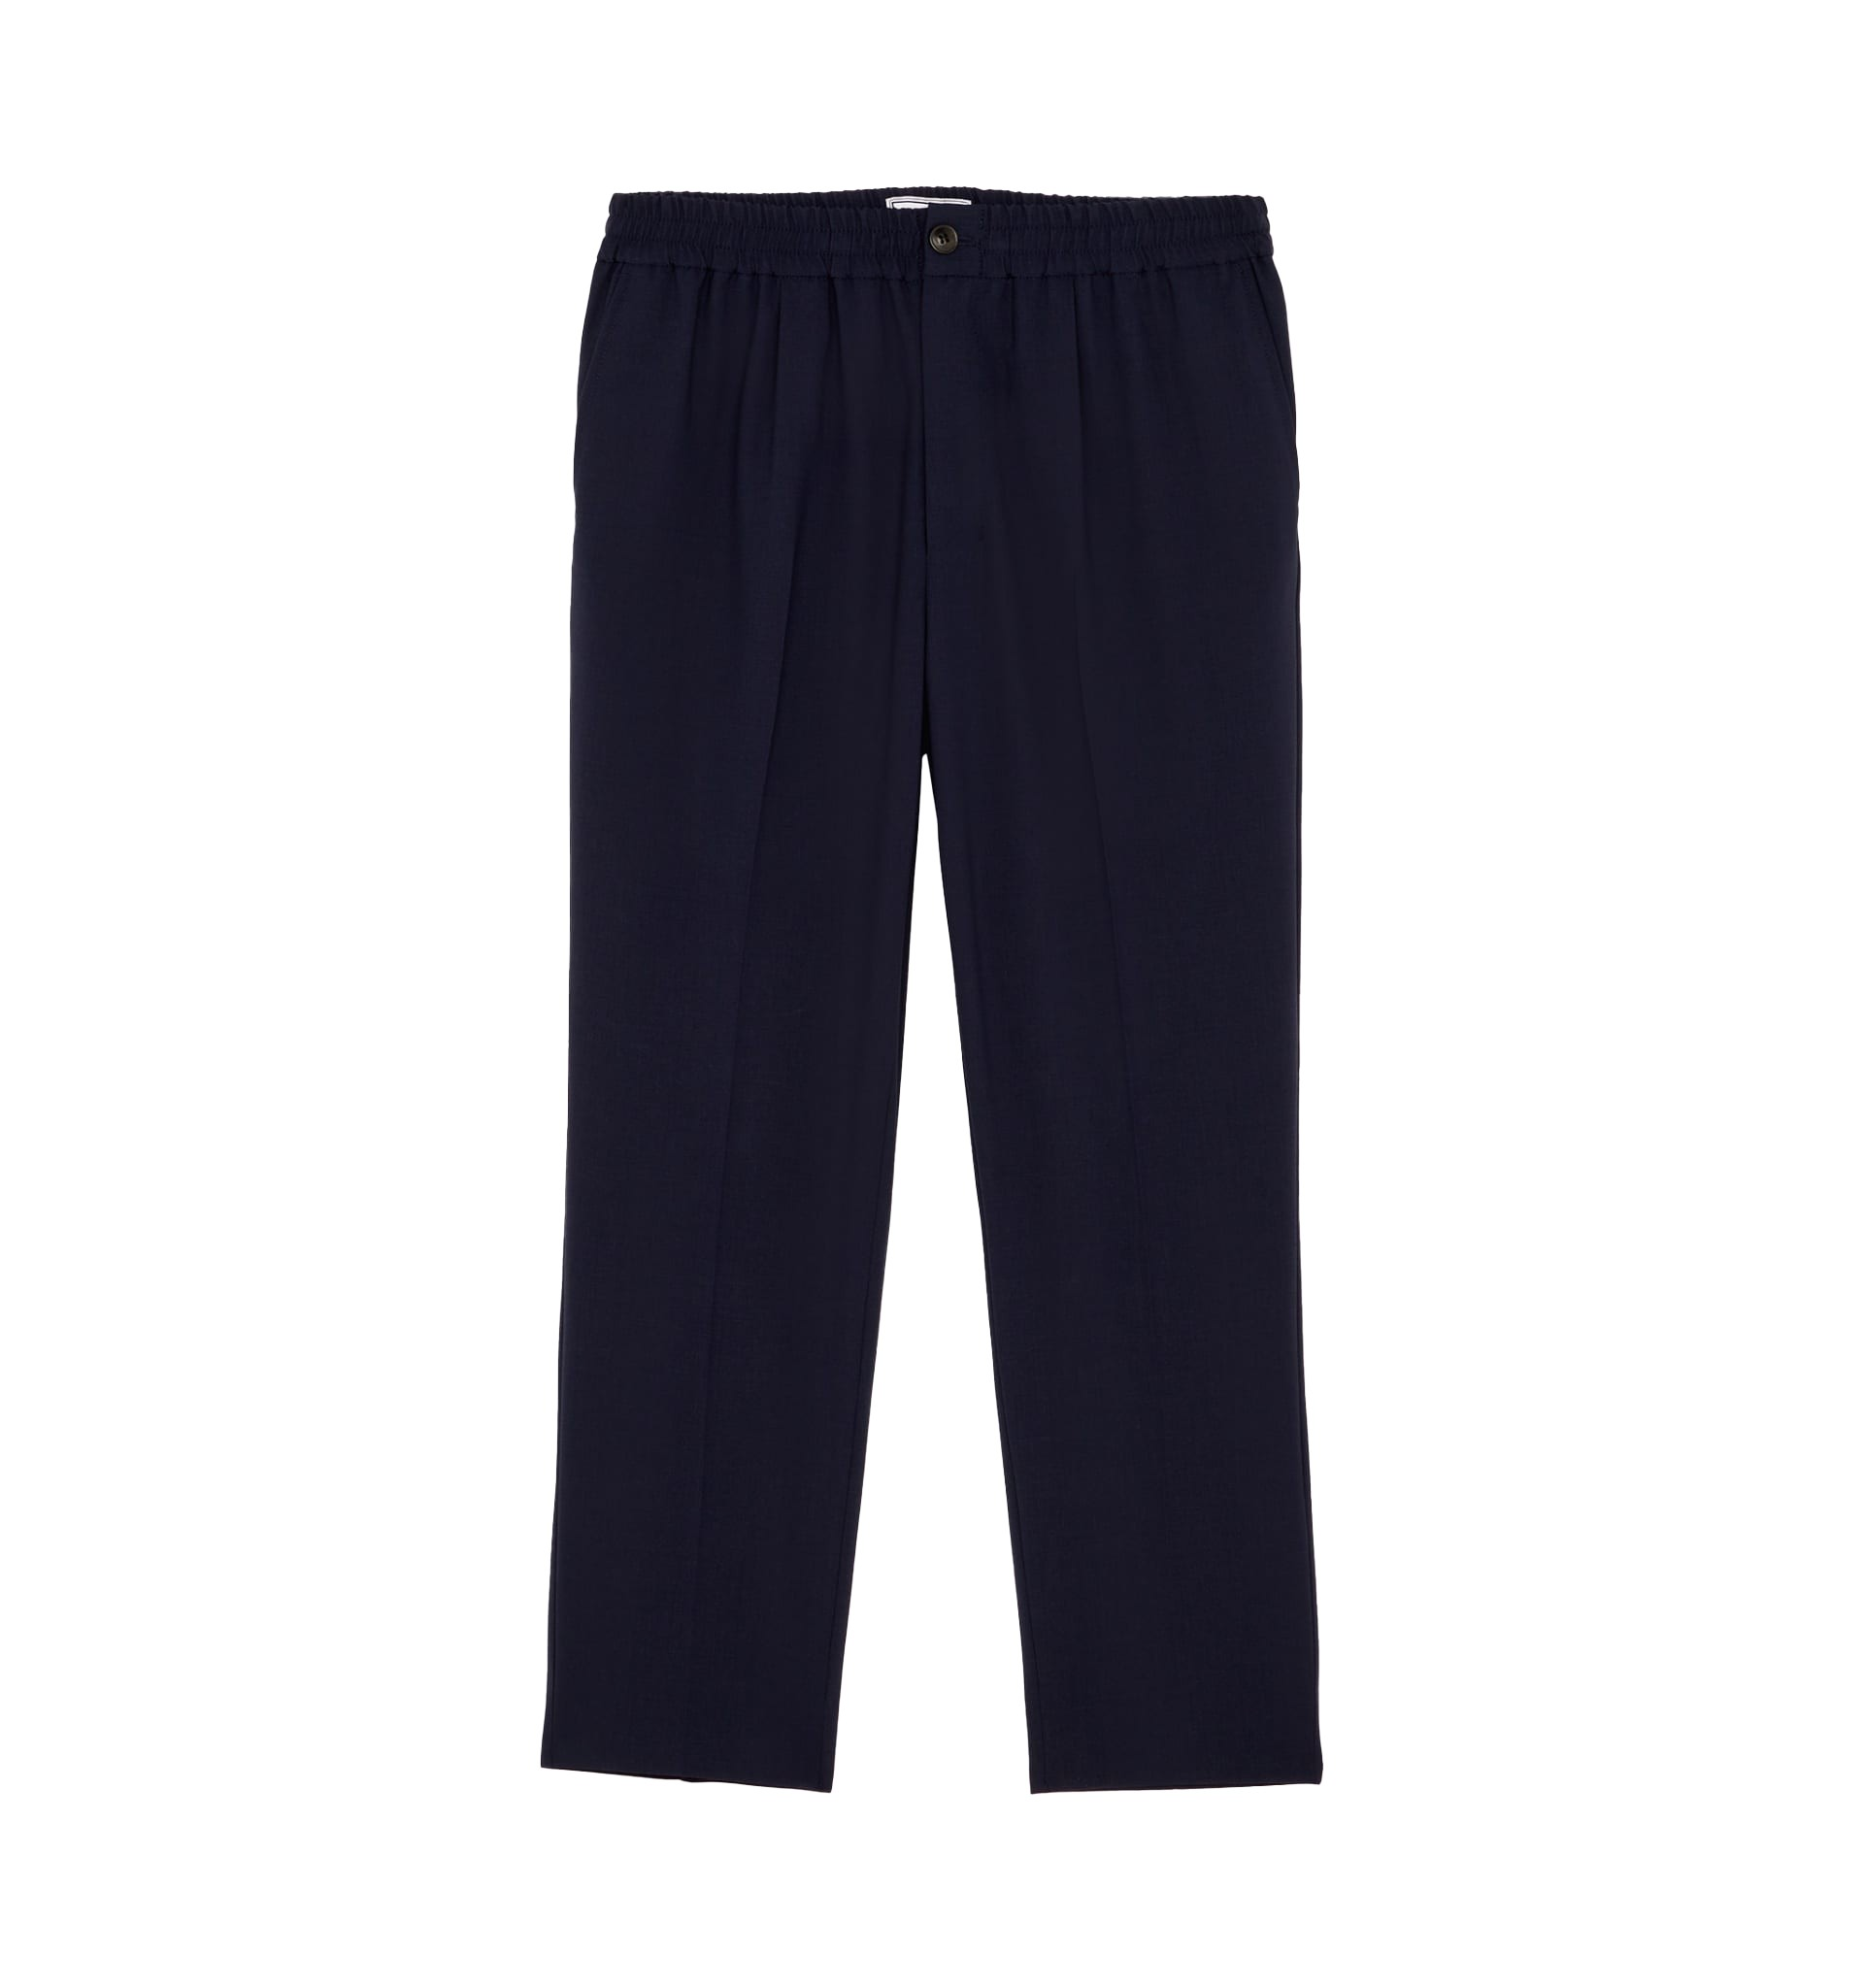 Ami Elastic Waist Cropped Fit Trouser Navy